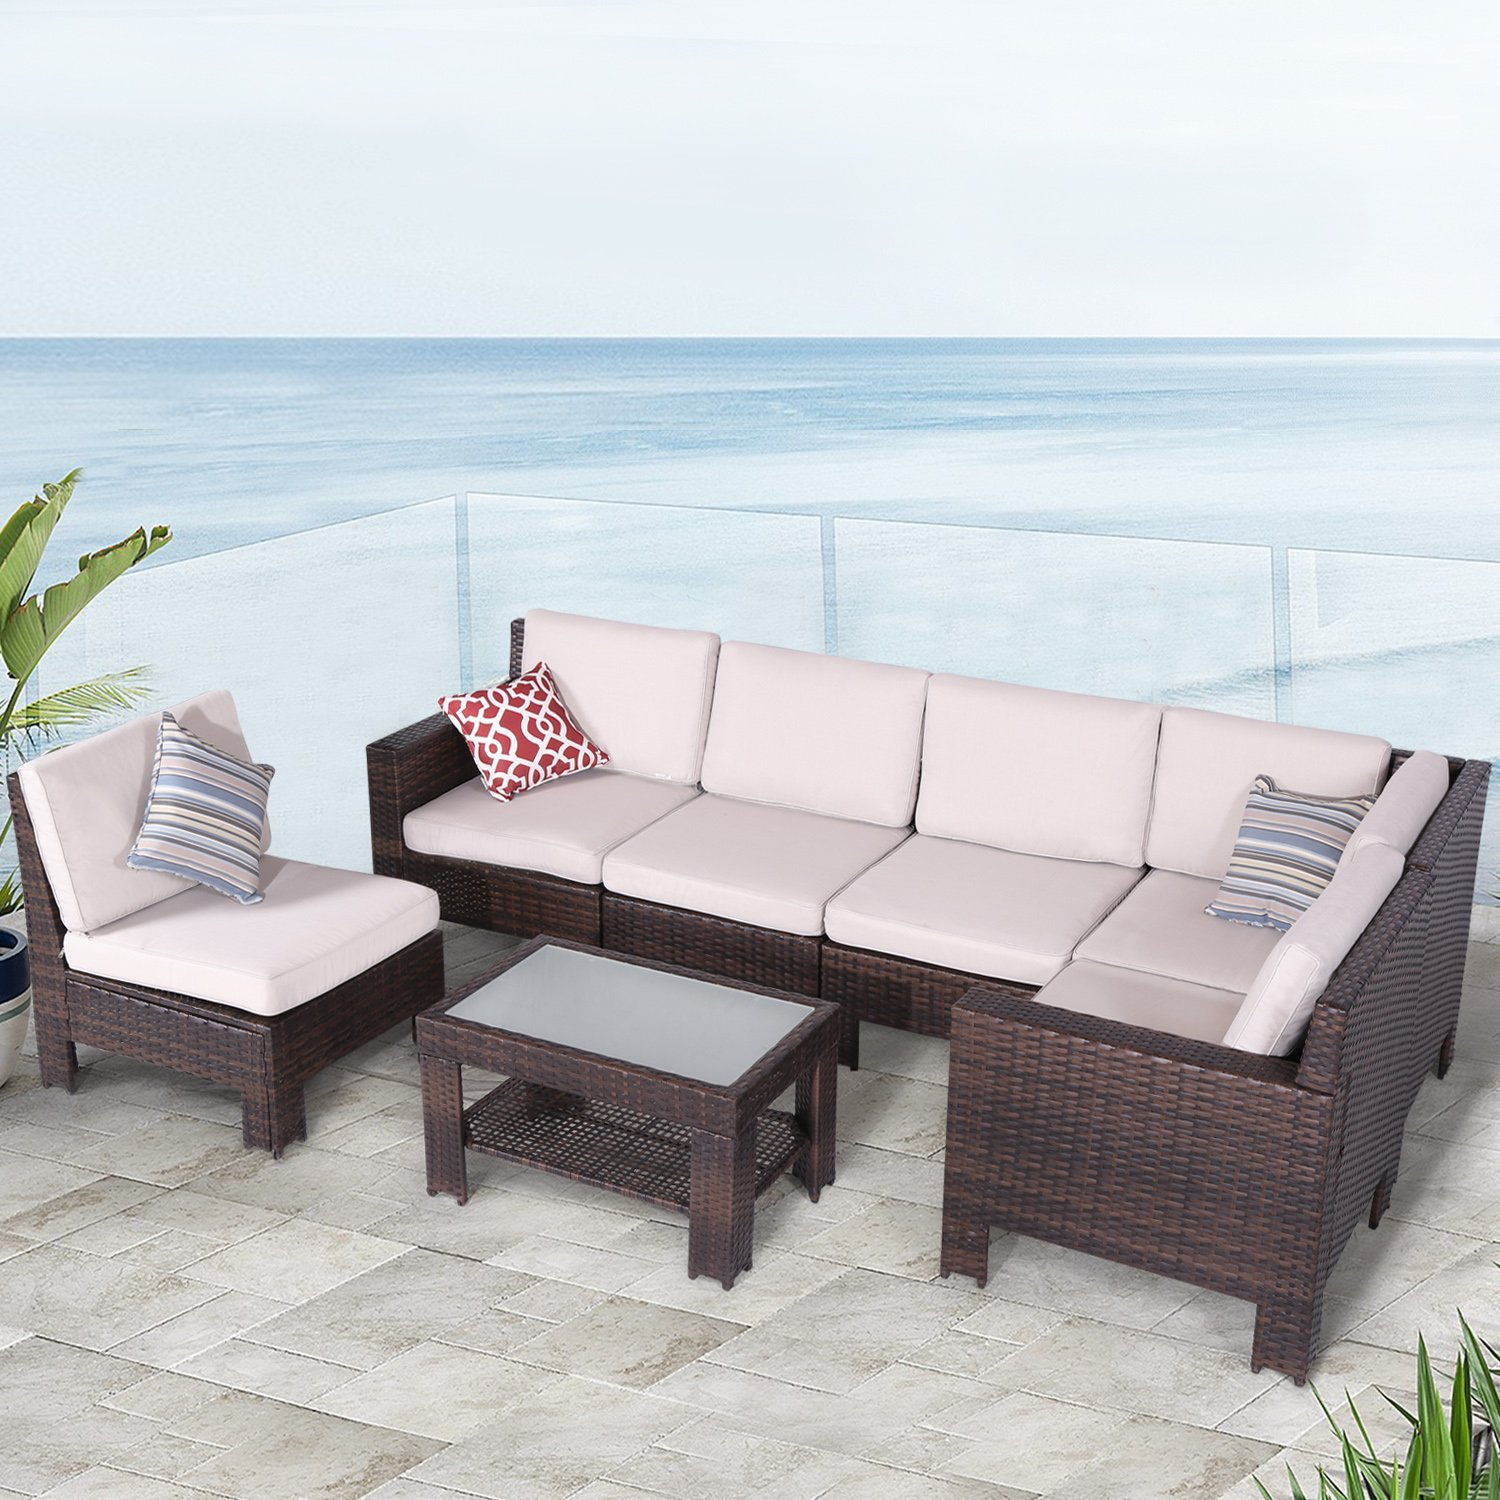 Diensday Outdoor Furniture 7-Piece Sectional Sofa Set All Weather Brown  Wicker Deep Seating with Beige Water-Resistant Olefin Cushion &  Sophisticated ...